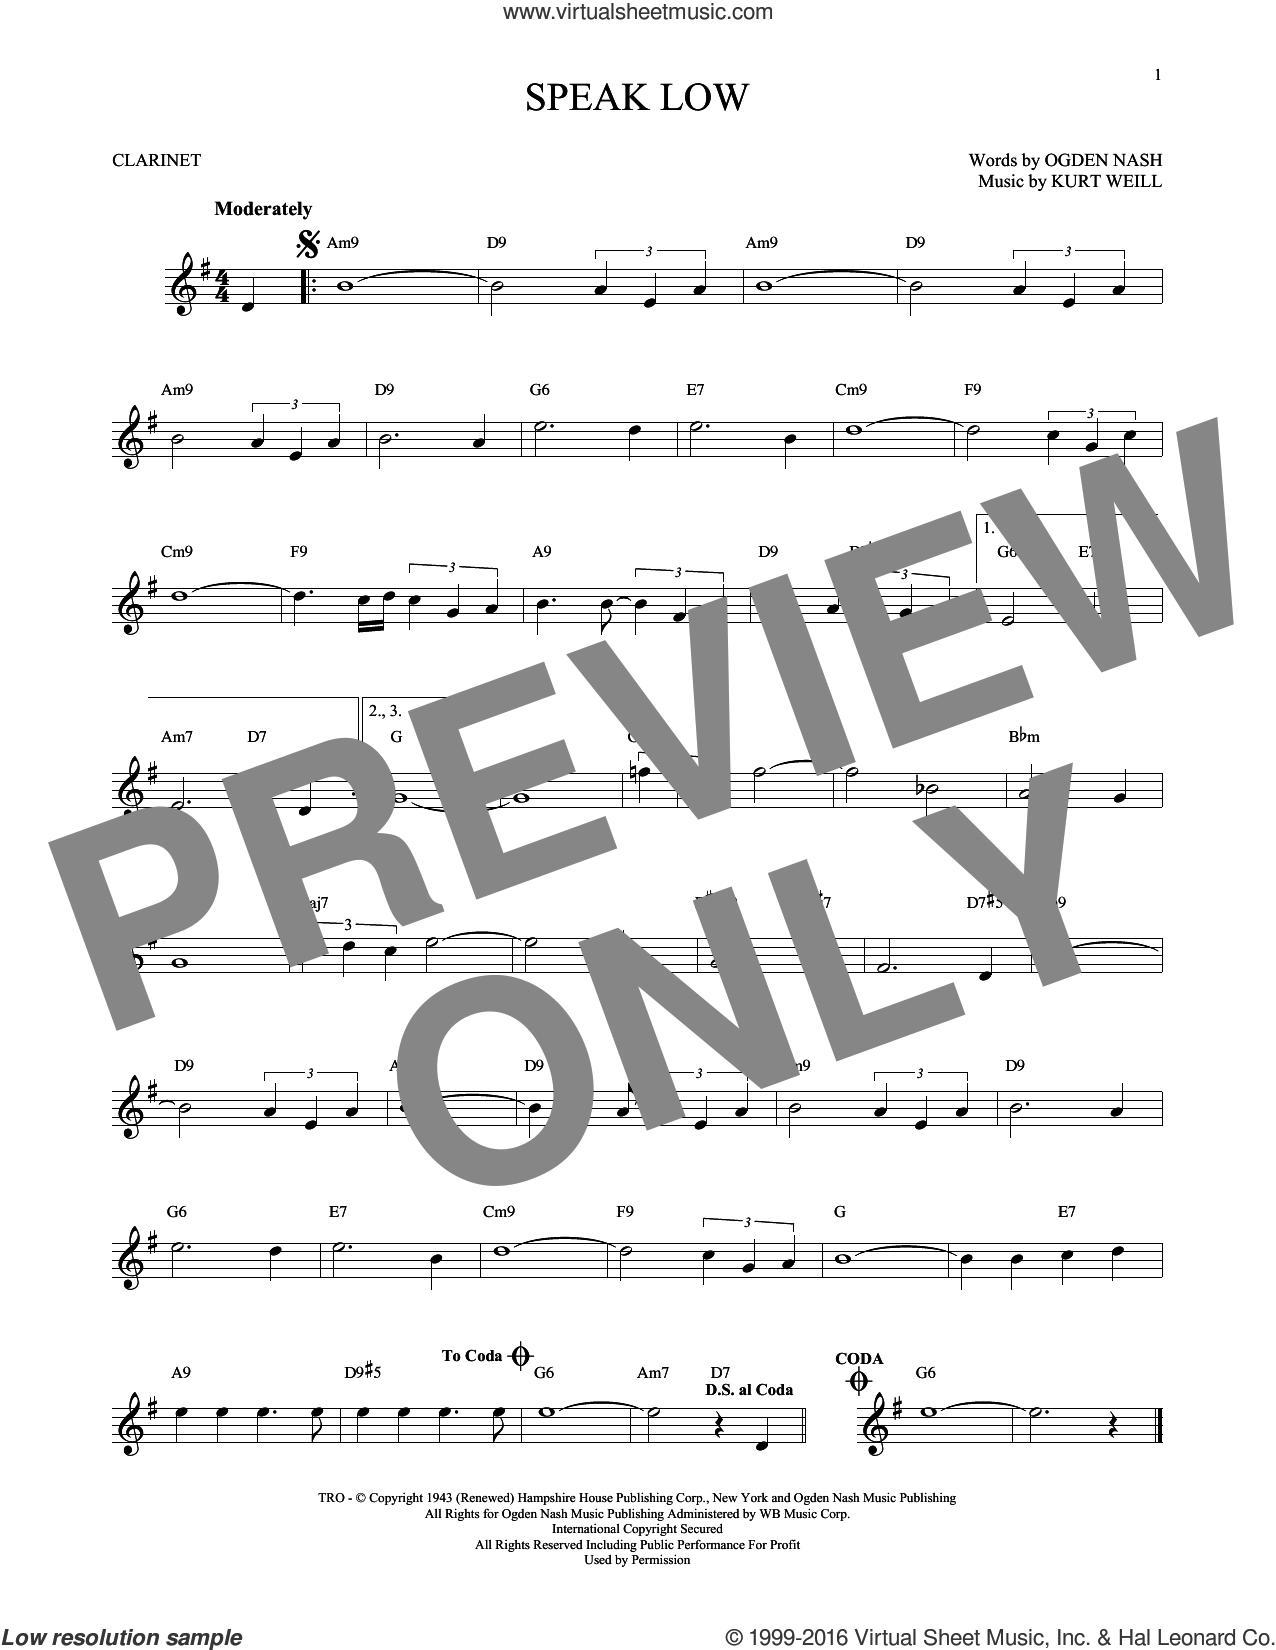 Speak Low sheet music for clarinet solo by Kurt Weill and Ogden Nash, intermediate skill level